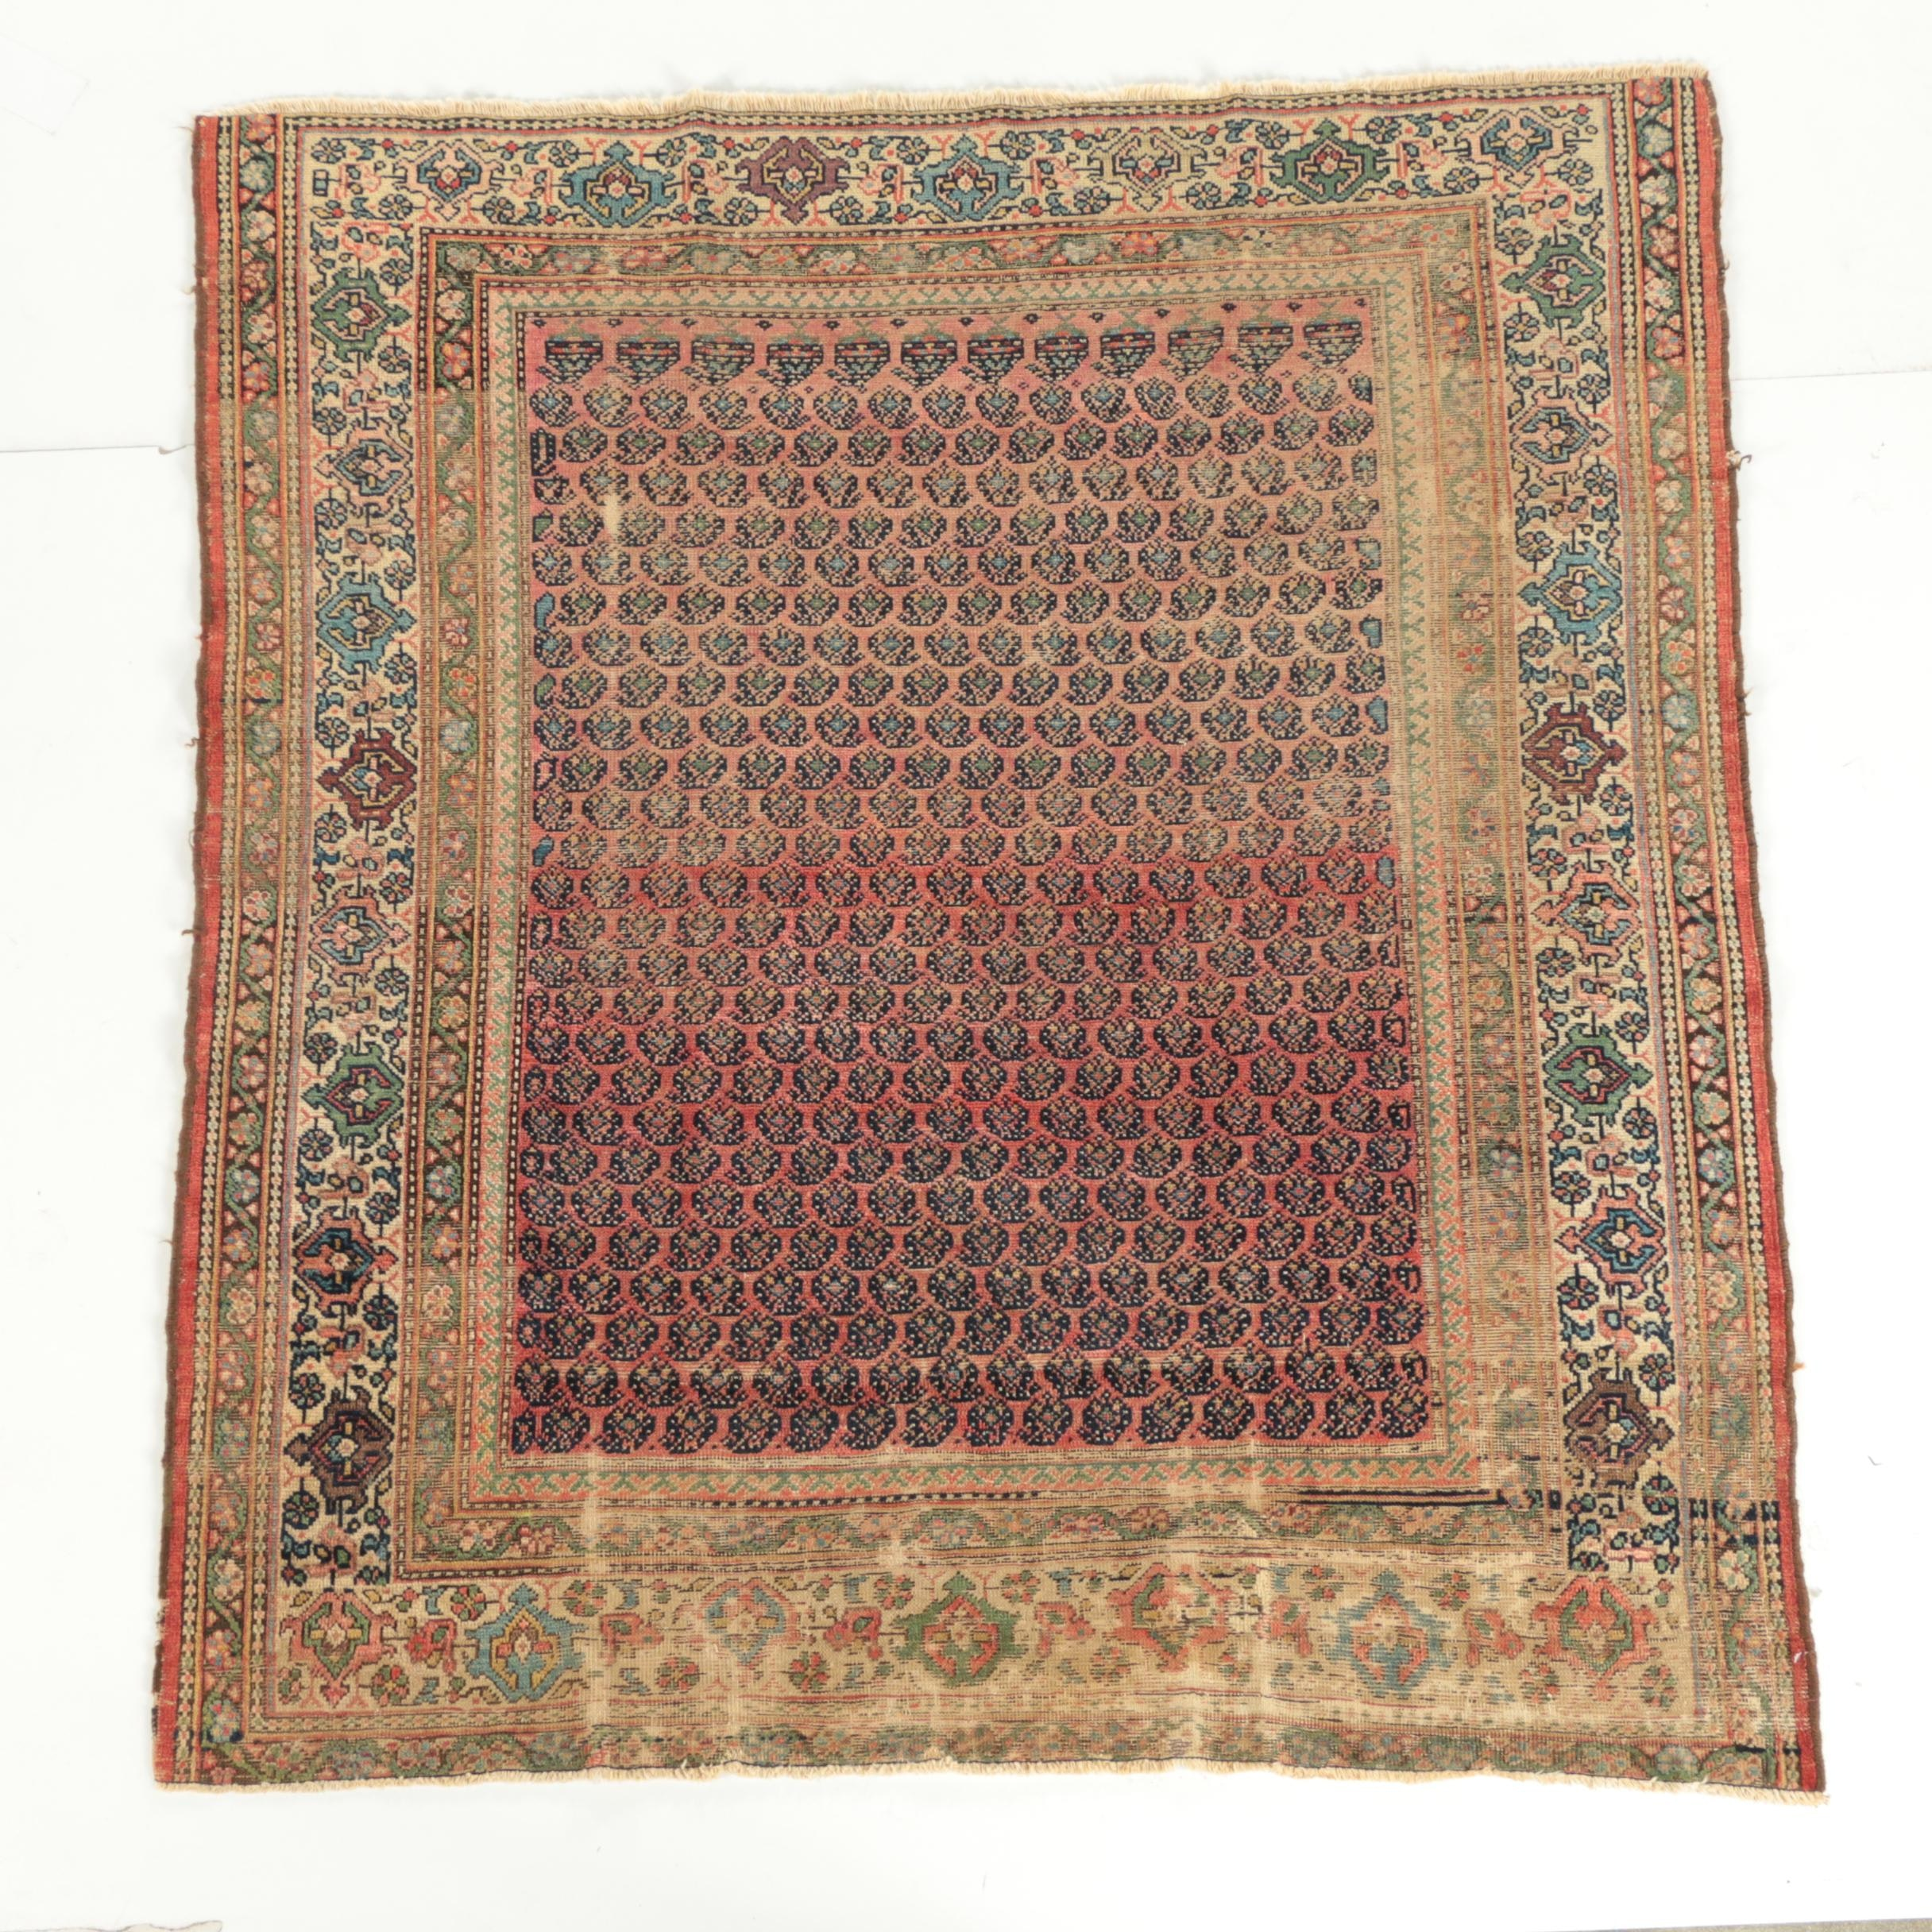 Vintage Hand-Knotted Persian Luri Wool Area Rug